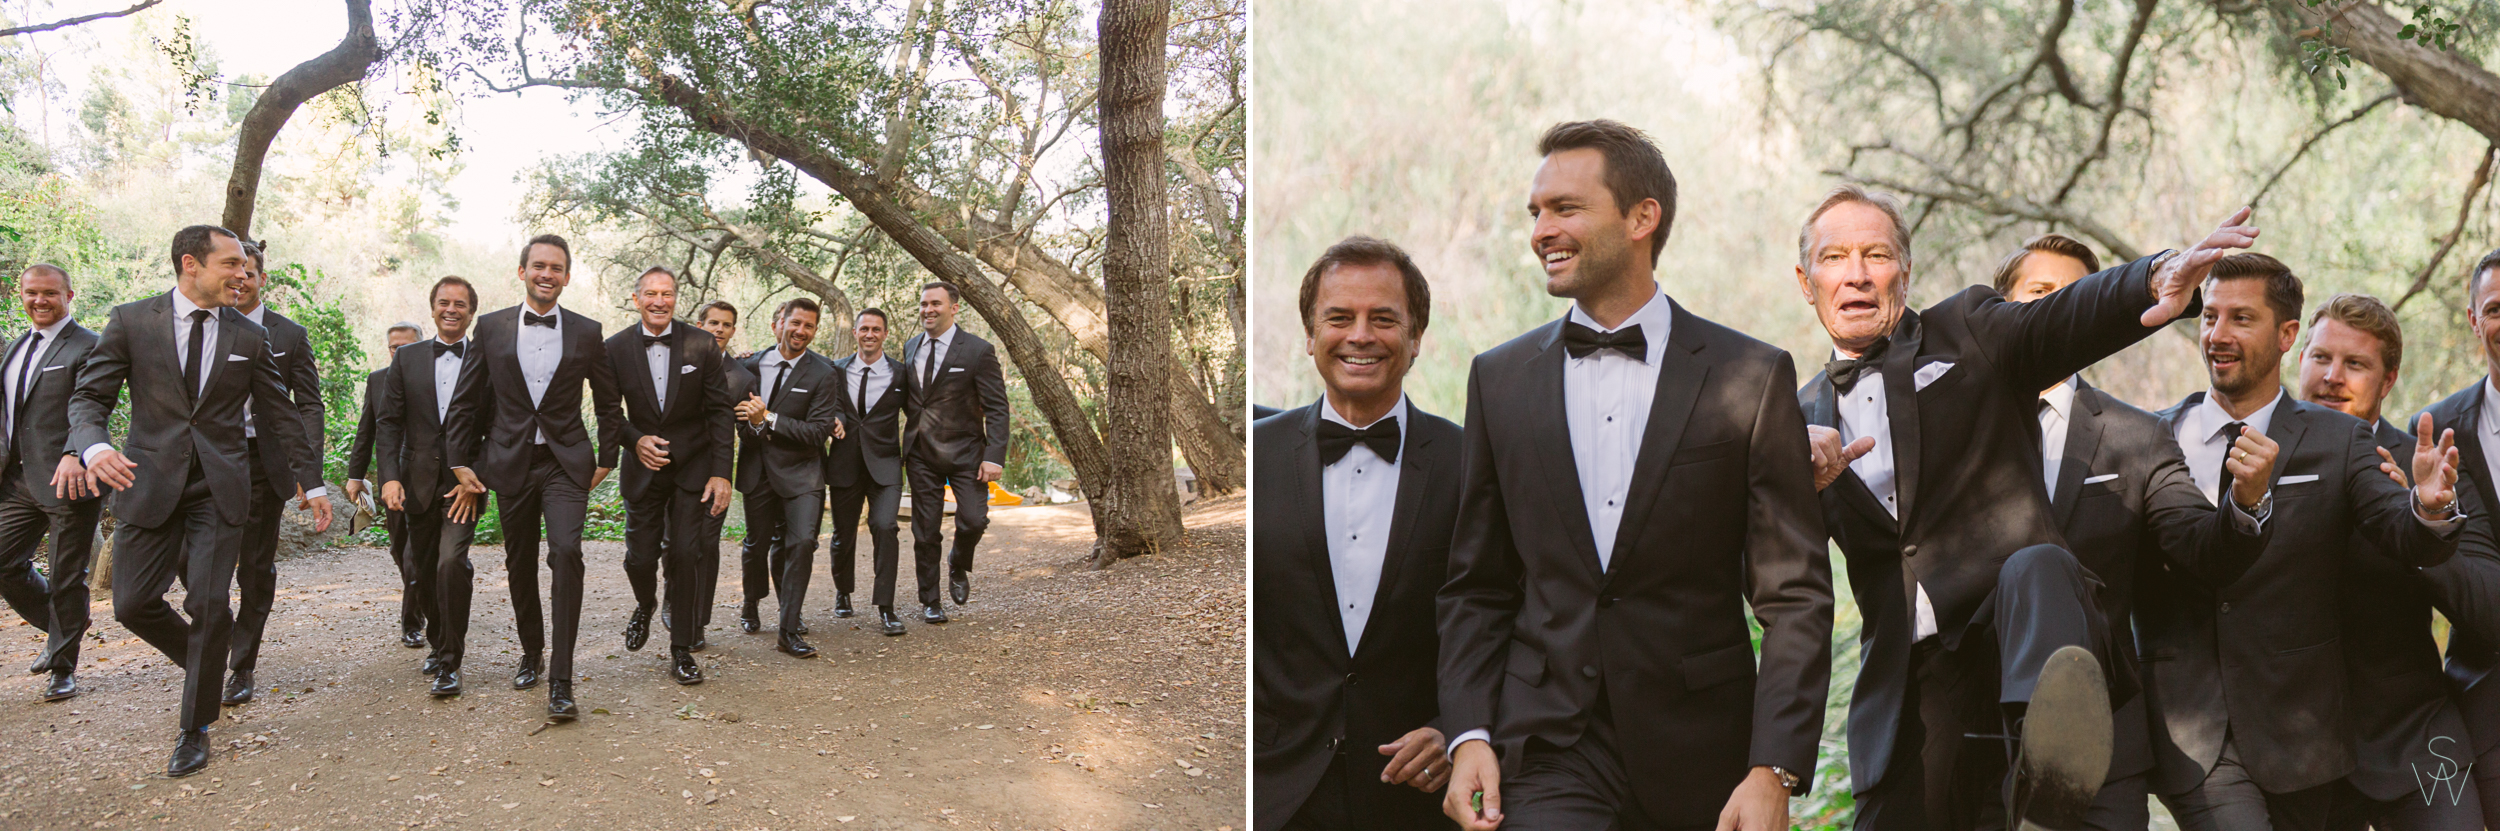 136Calamigos.ranch.shewanders.wedding.groomsman.portrait.photography.JPG